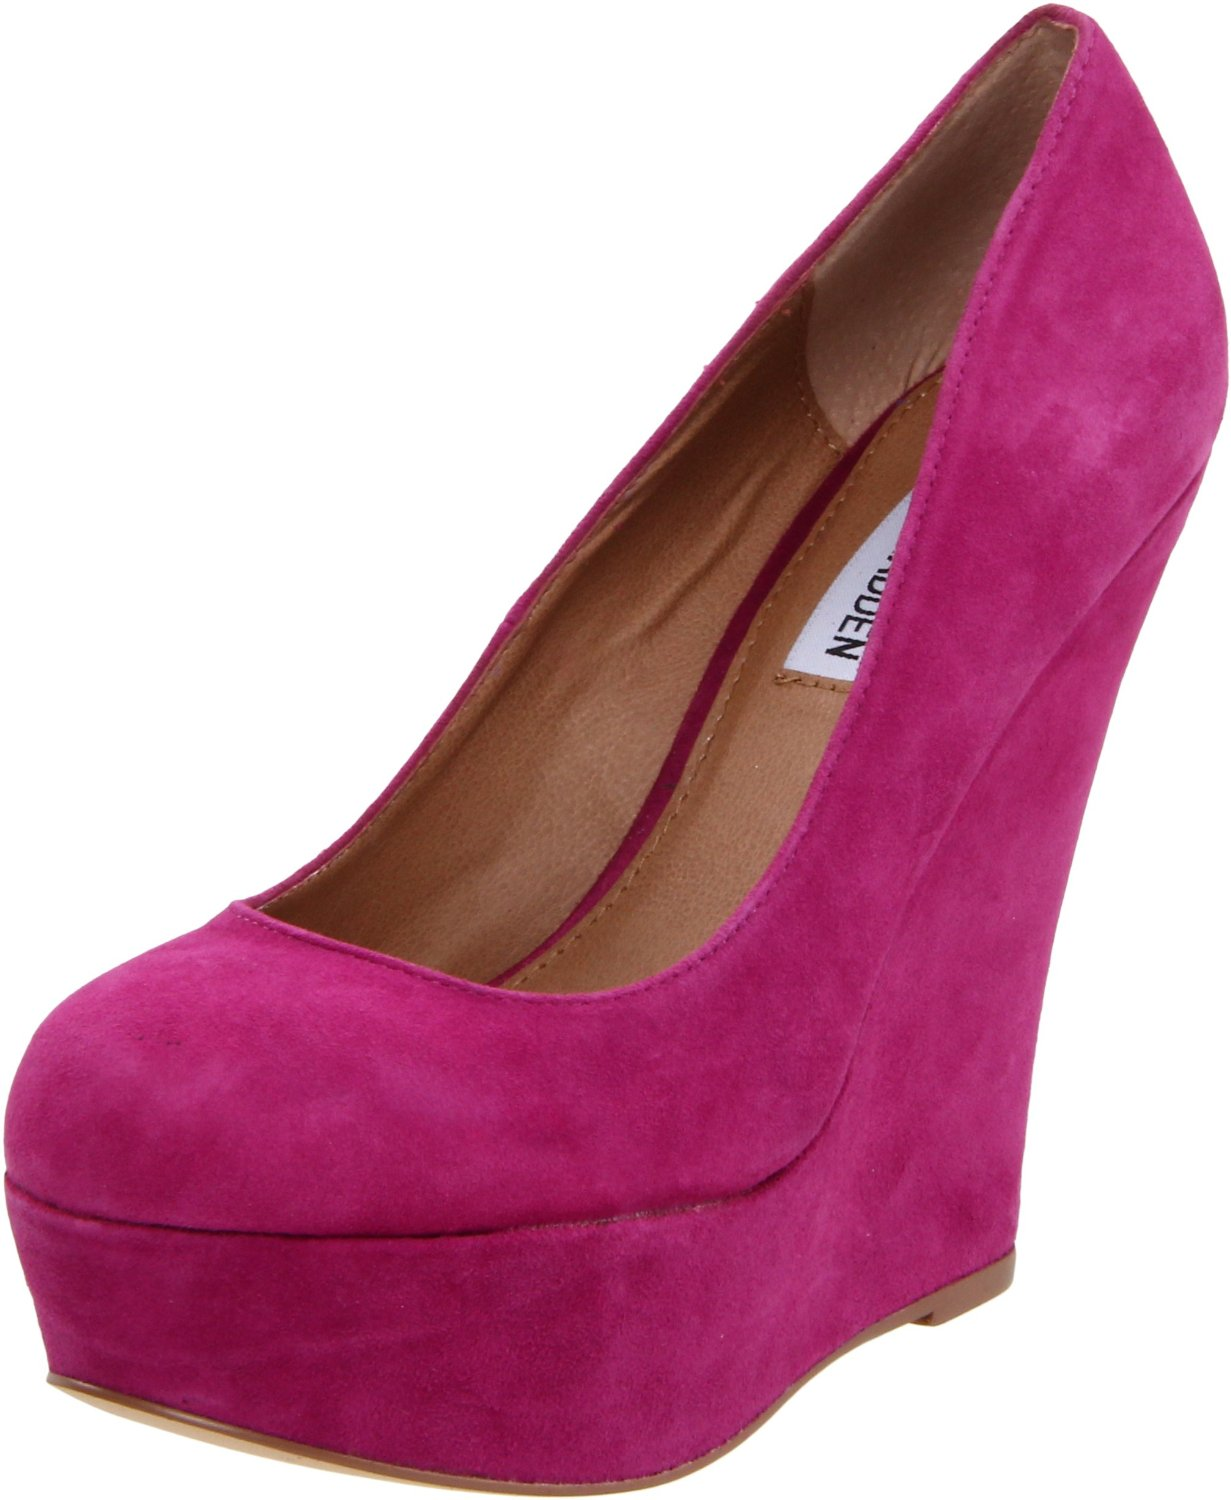 a5b1d07b98c AMAZON BEST PRODUCT REVIEW: Steve Madden Women's Pammyy Wedge Pump